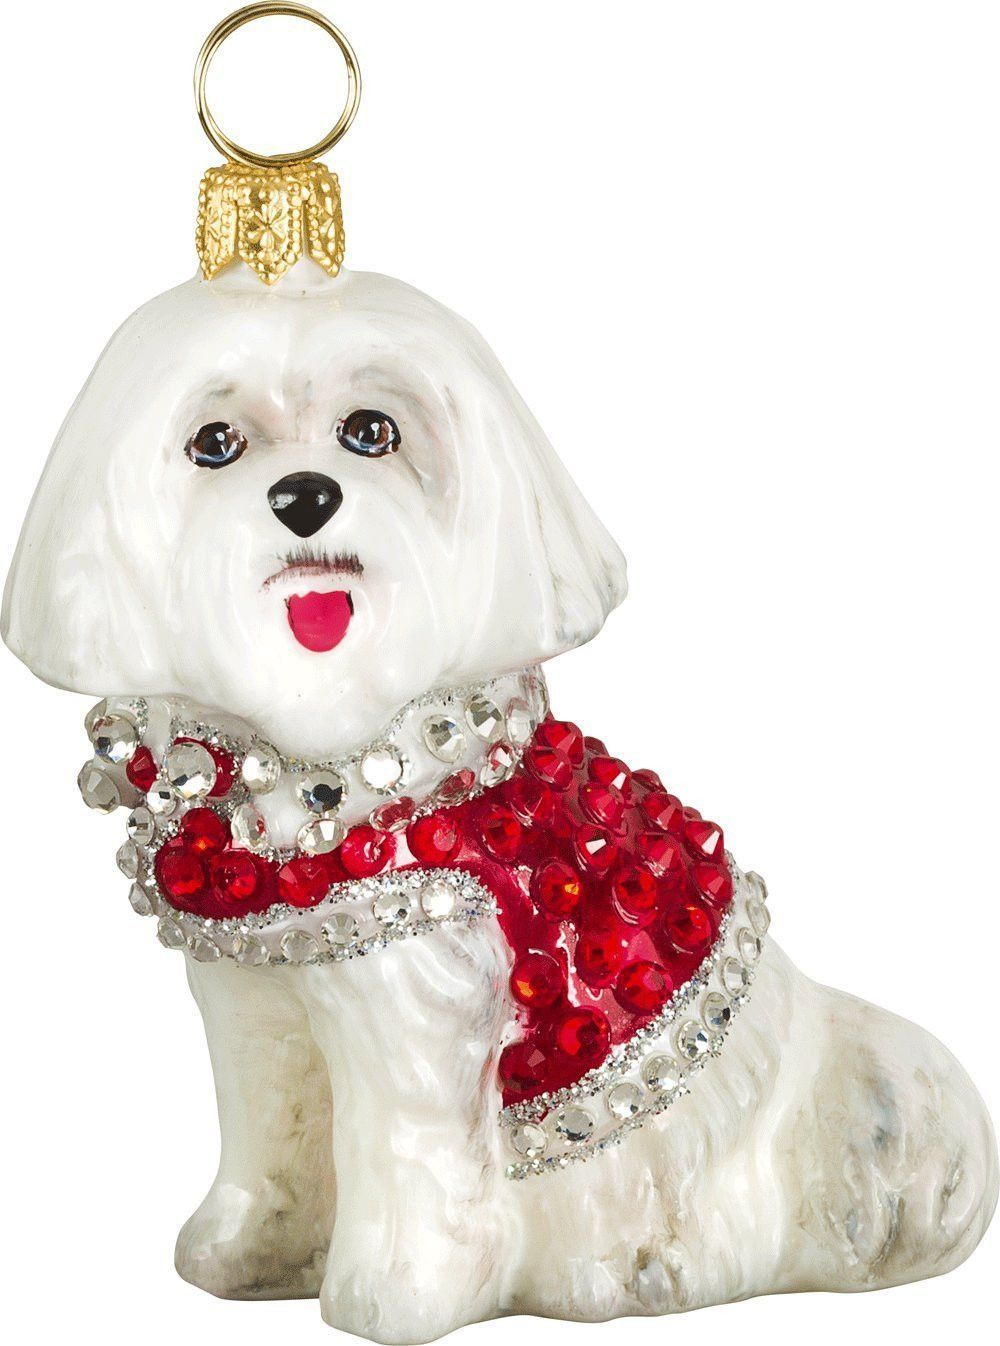 Maltese christmas ornaments - The Pet Set Maltese With Austrian Crystals Glass Christmas Ornament Handcrafted In Europe By Joy